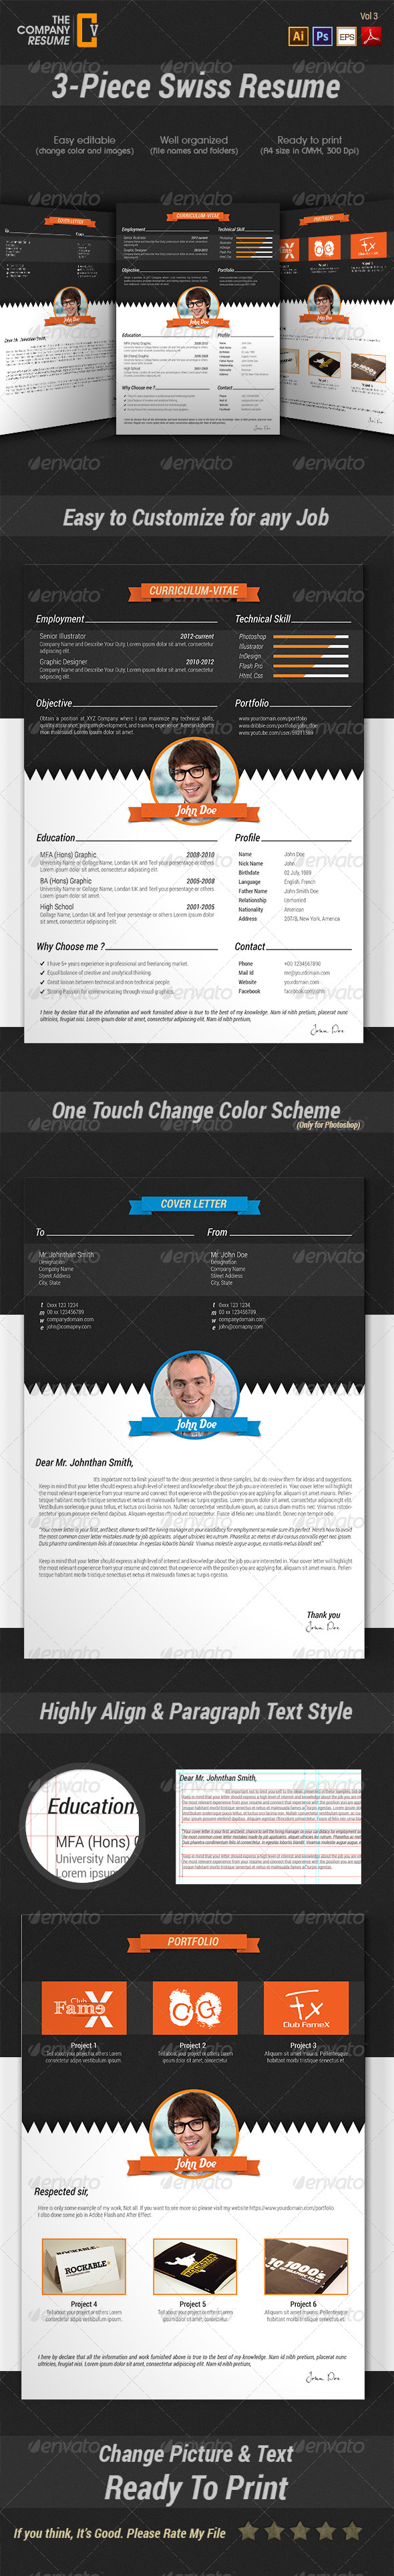 GraphicRiver 3-Piece Swiss Resume 7093046